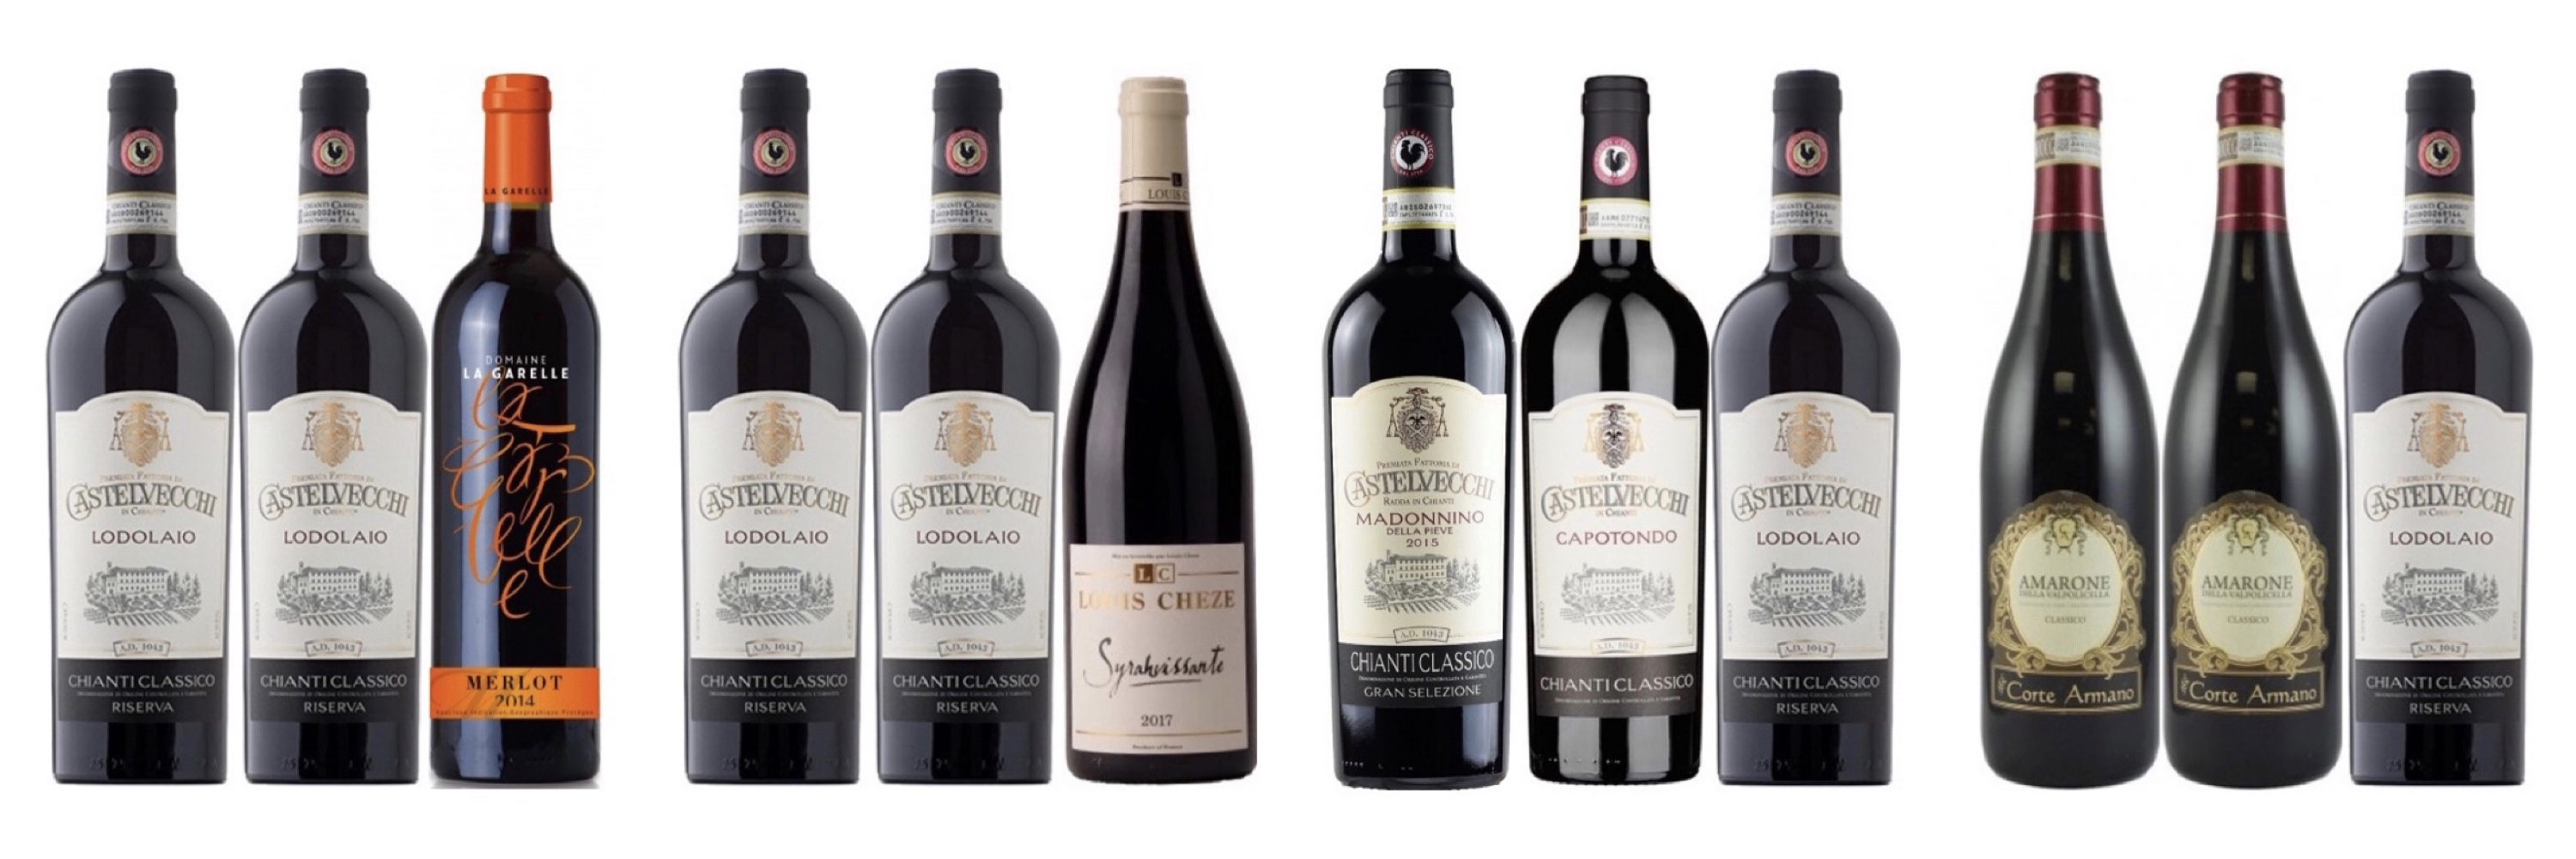 Discover Award Winning Italian wine and Chateauneuf du Pape Offers! Buy 2 and Get 1 Free (worth up to $68) !